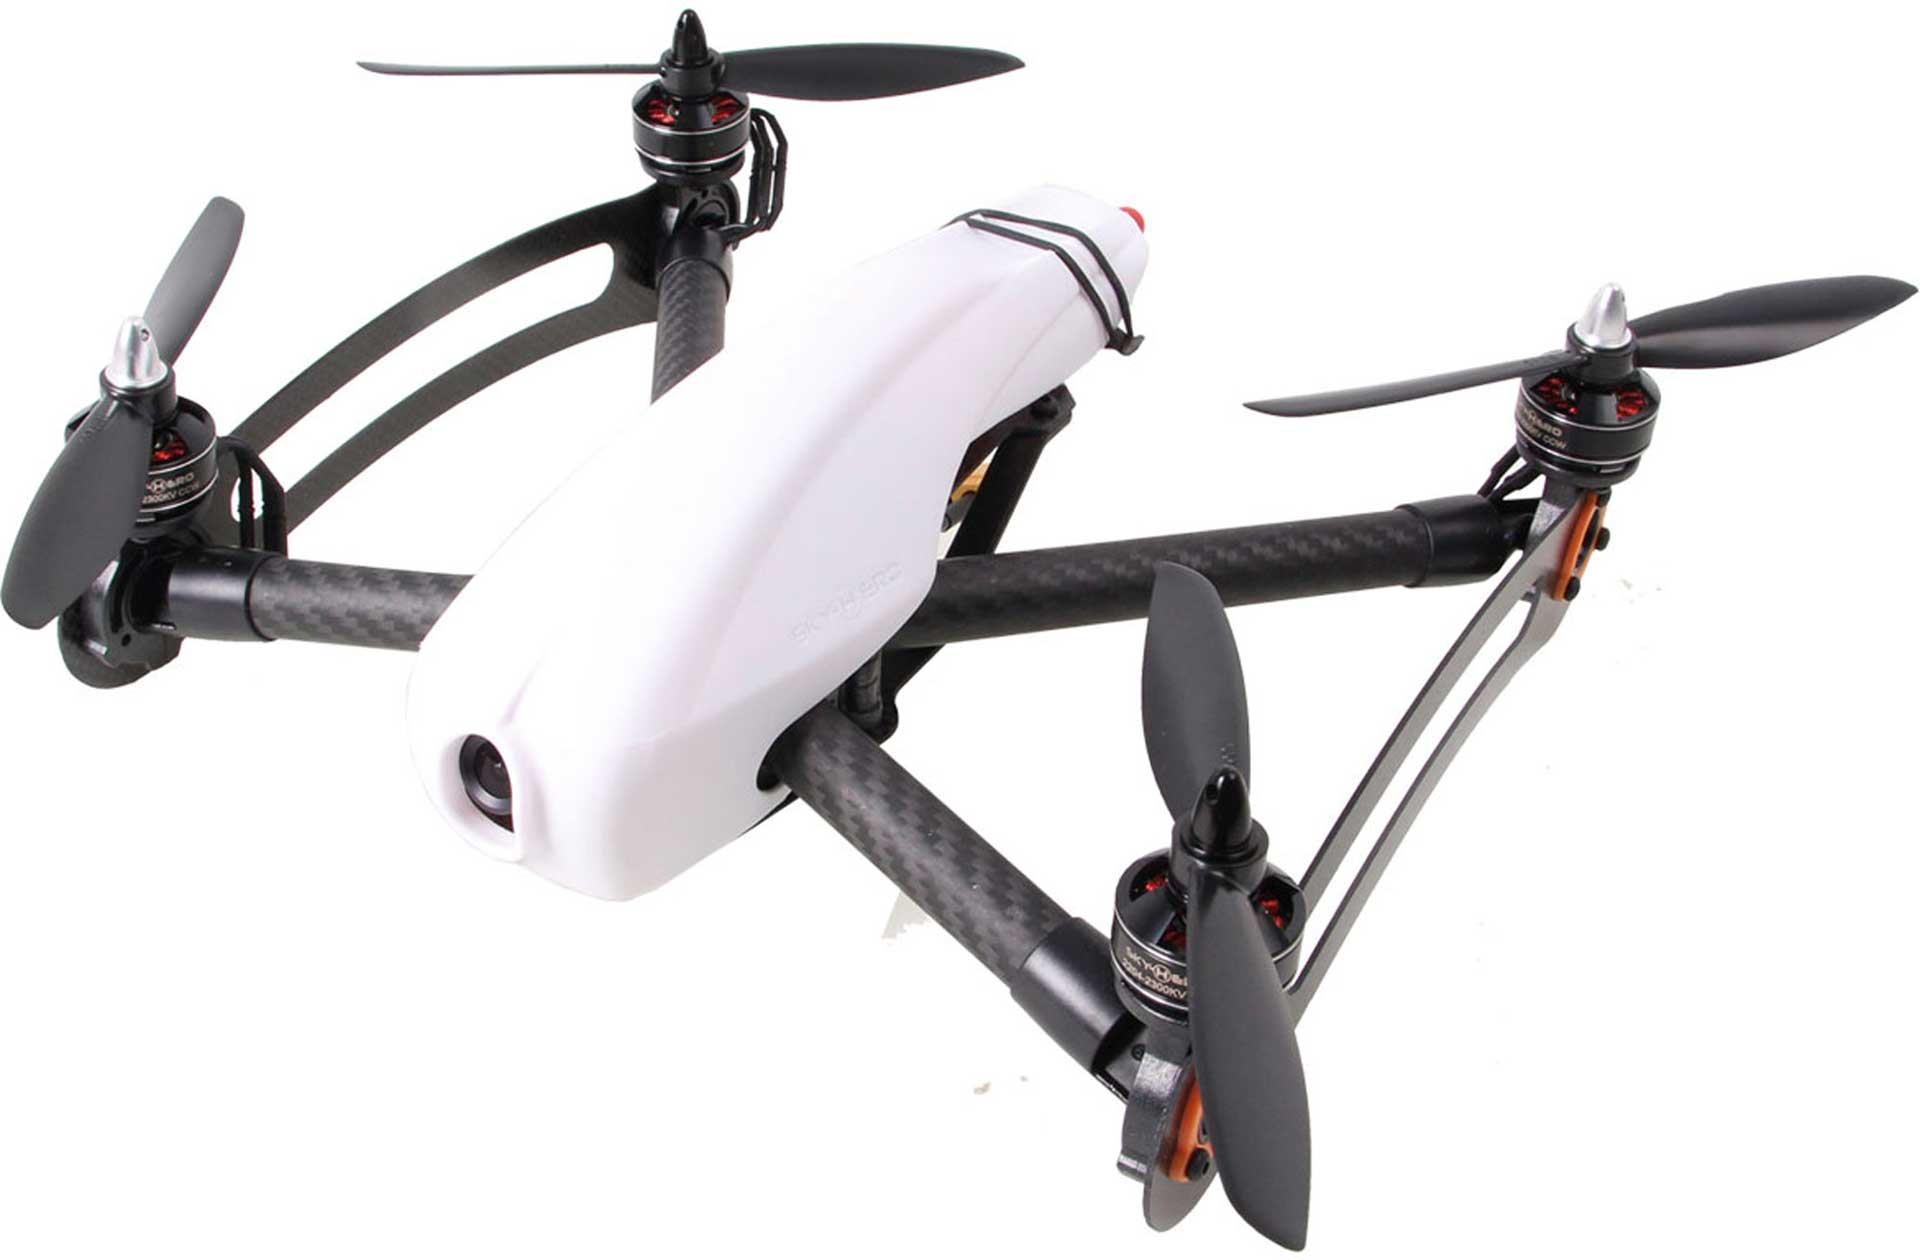 "SKY-HERO ANAKIN 6"" ARF FPV 280 RACE COPTER INCL. FPV TRANSMITTER,  PRE-INSTALLED"